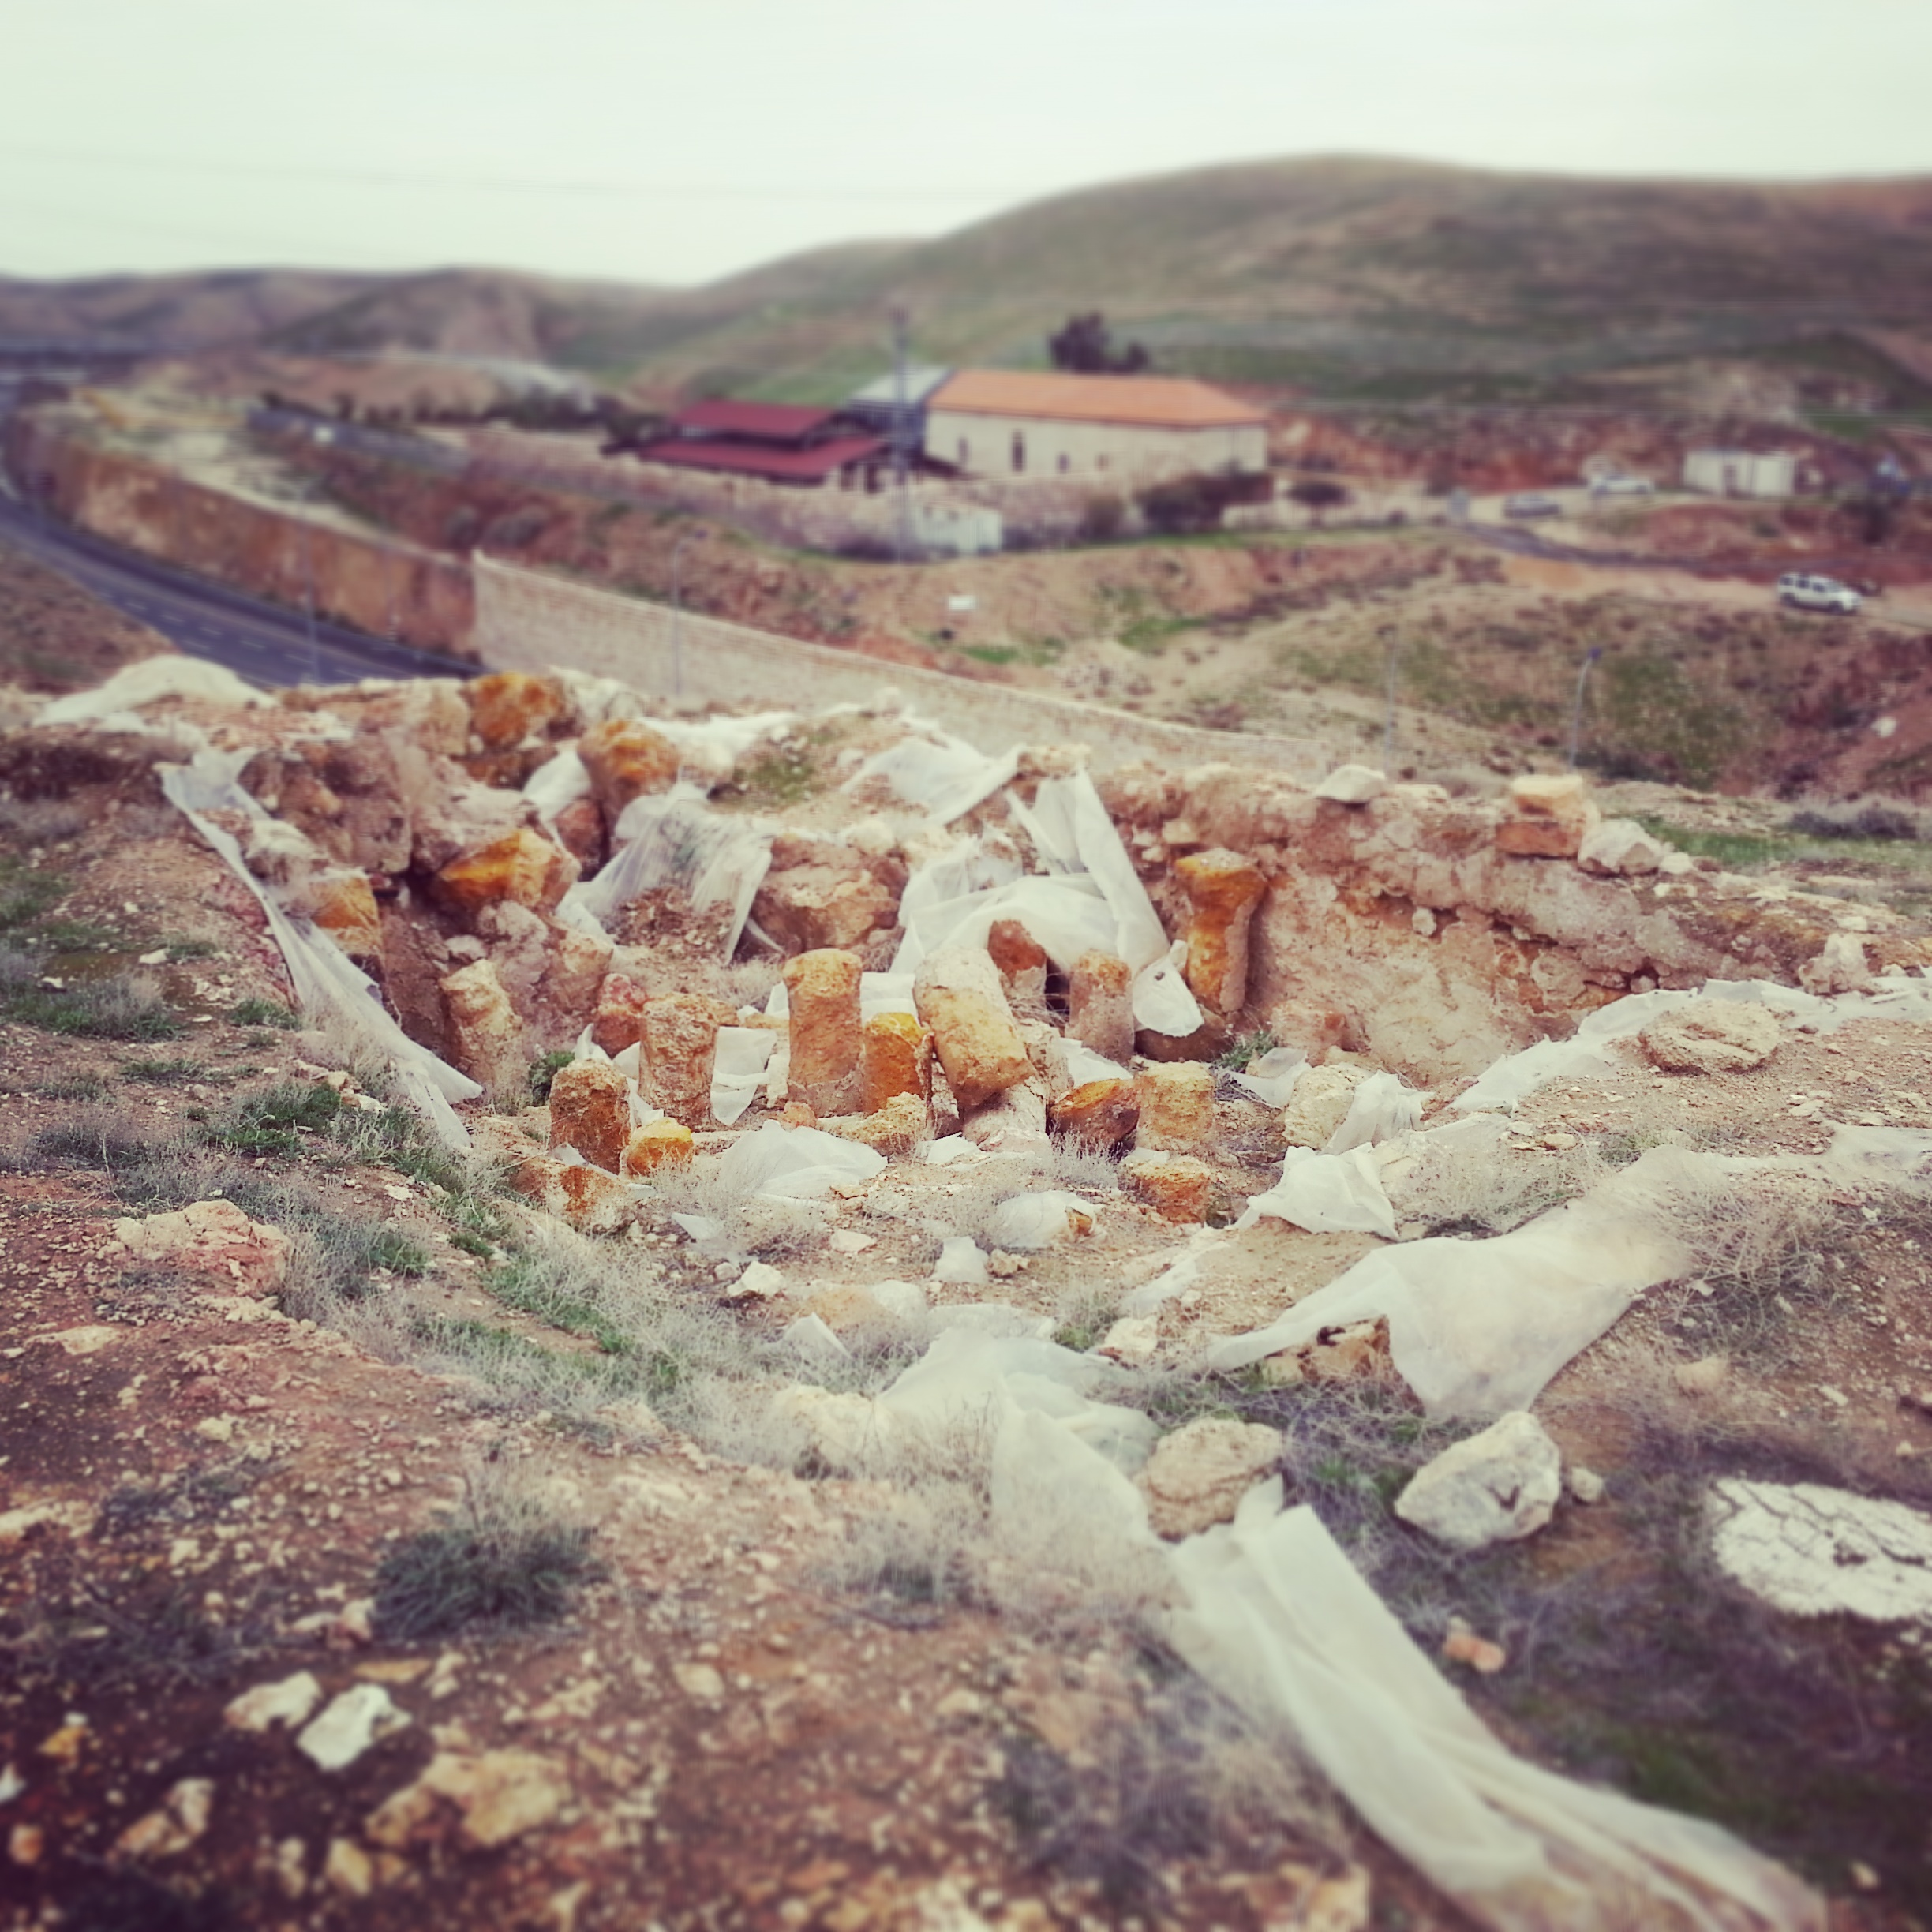 Remains of a Herodian bath house - in the background is Route 1 and the Inn of the Good Samaritan